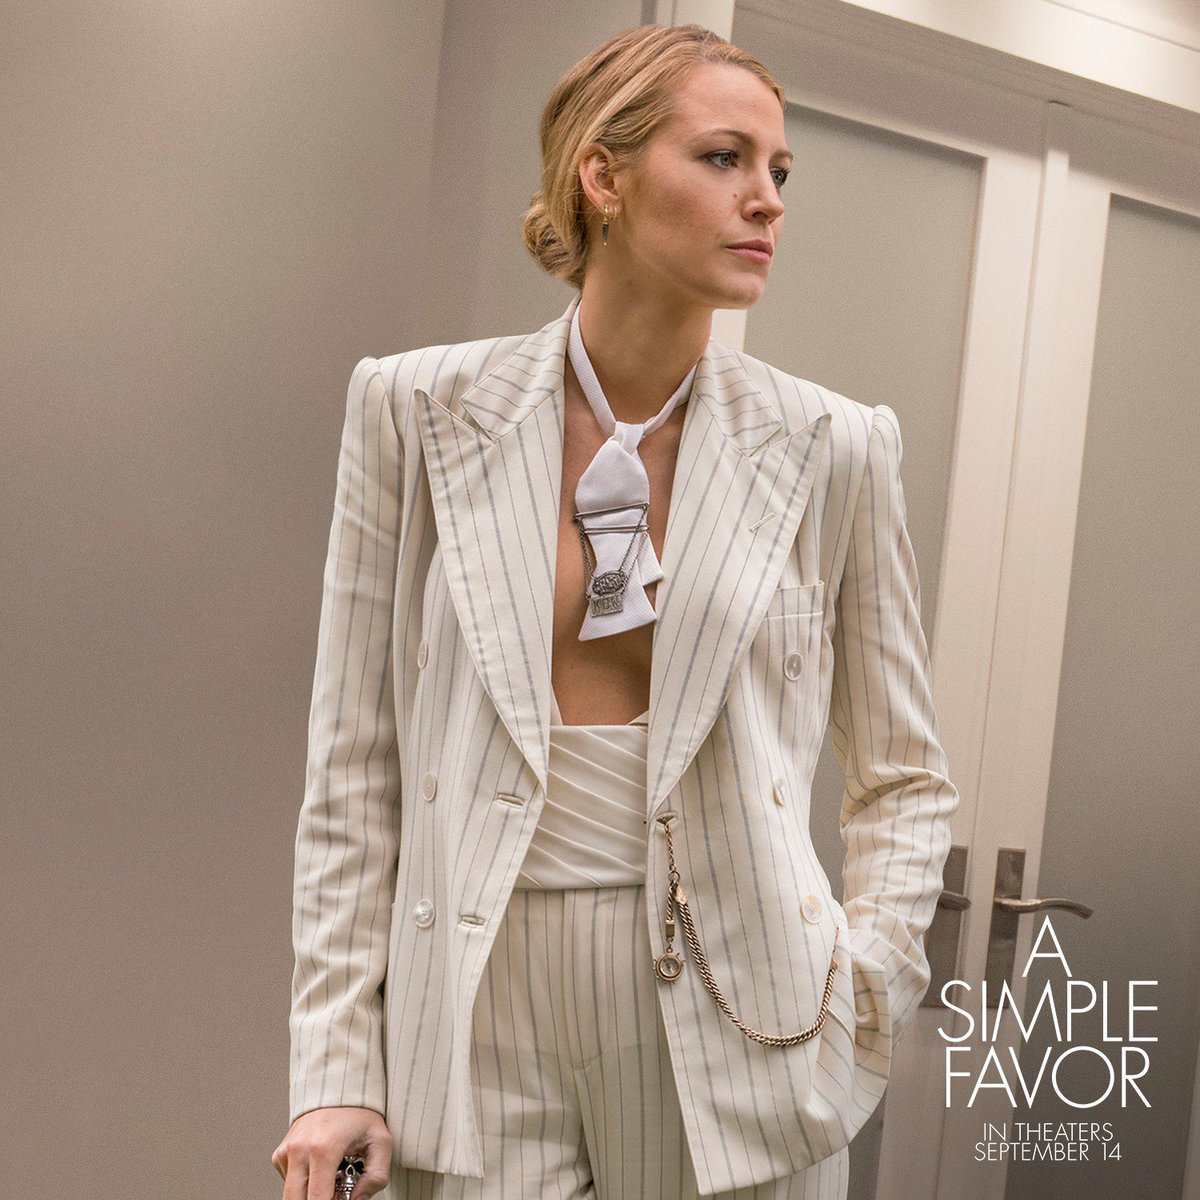 a simple favor on twitter high fashion with a twist blake lively stars in asimplefavor in. Black Bedroom Furniture Sets. Home Design Ideas